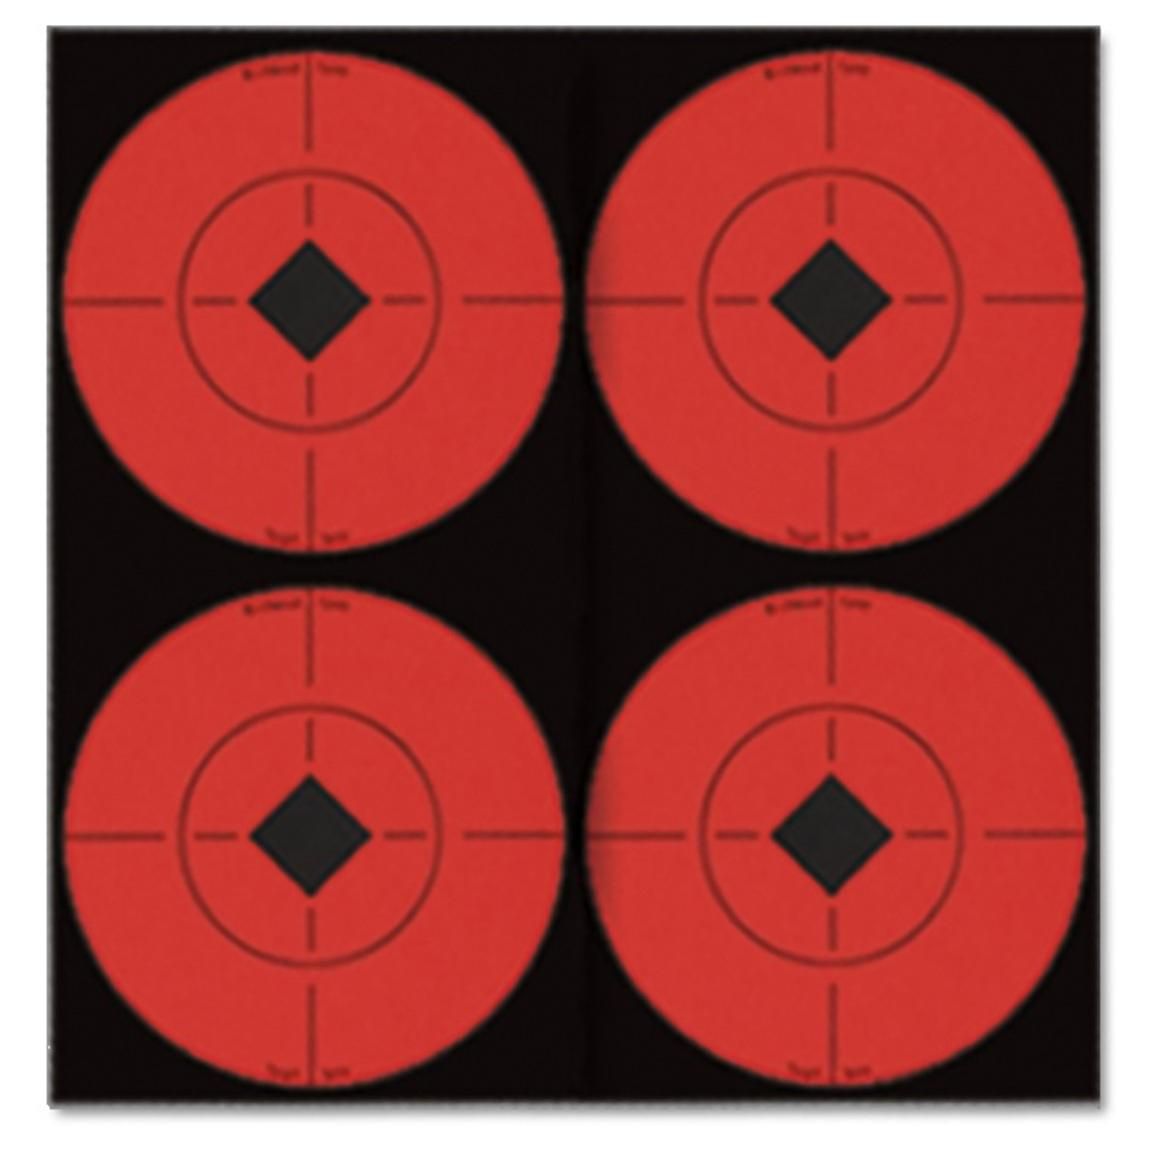 1000 Inch Target Spots® 3 Inch Round Target